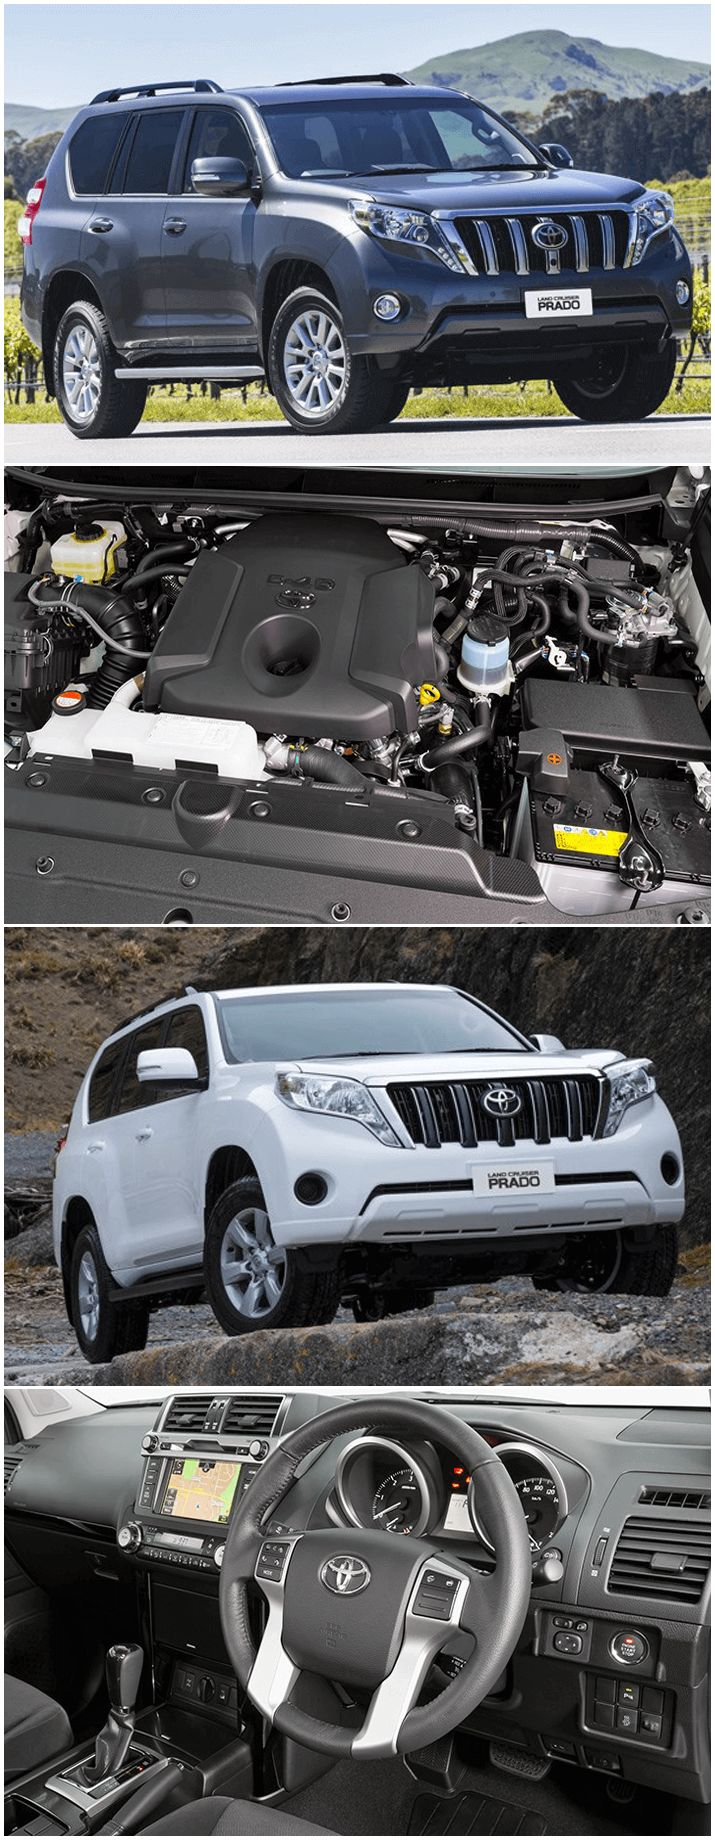 #Toyota #Prado Offers Both #Petrol and #Diesel #Engines  For More Information Visit Link: http://www.enginefitted.co.uk/blog/category/toyota-2/